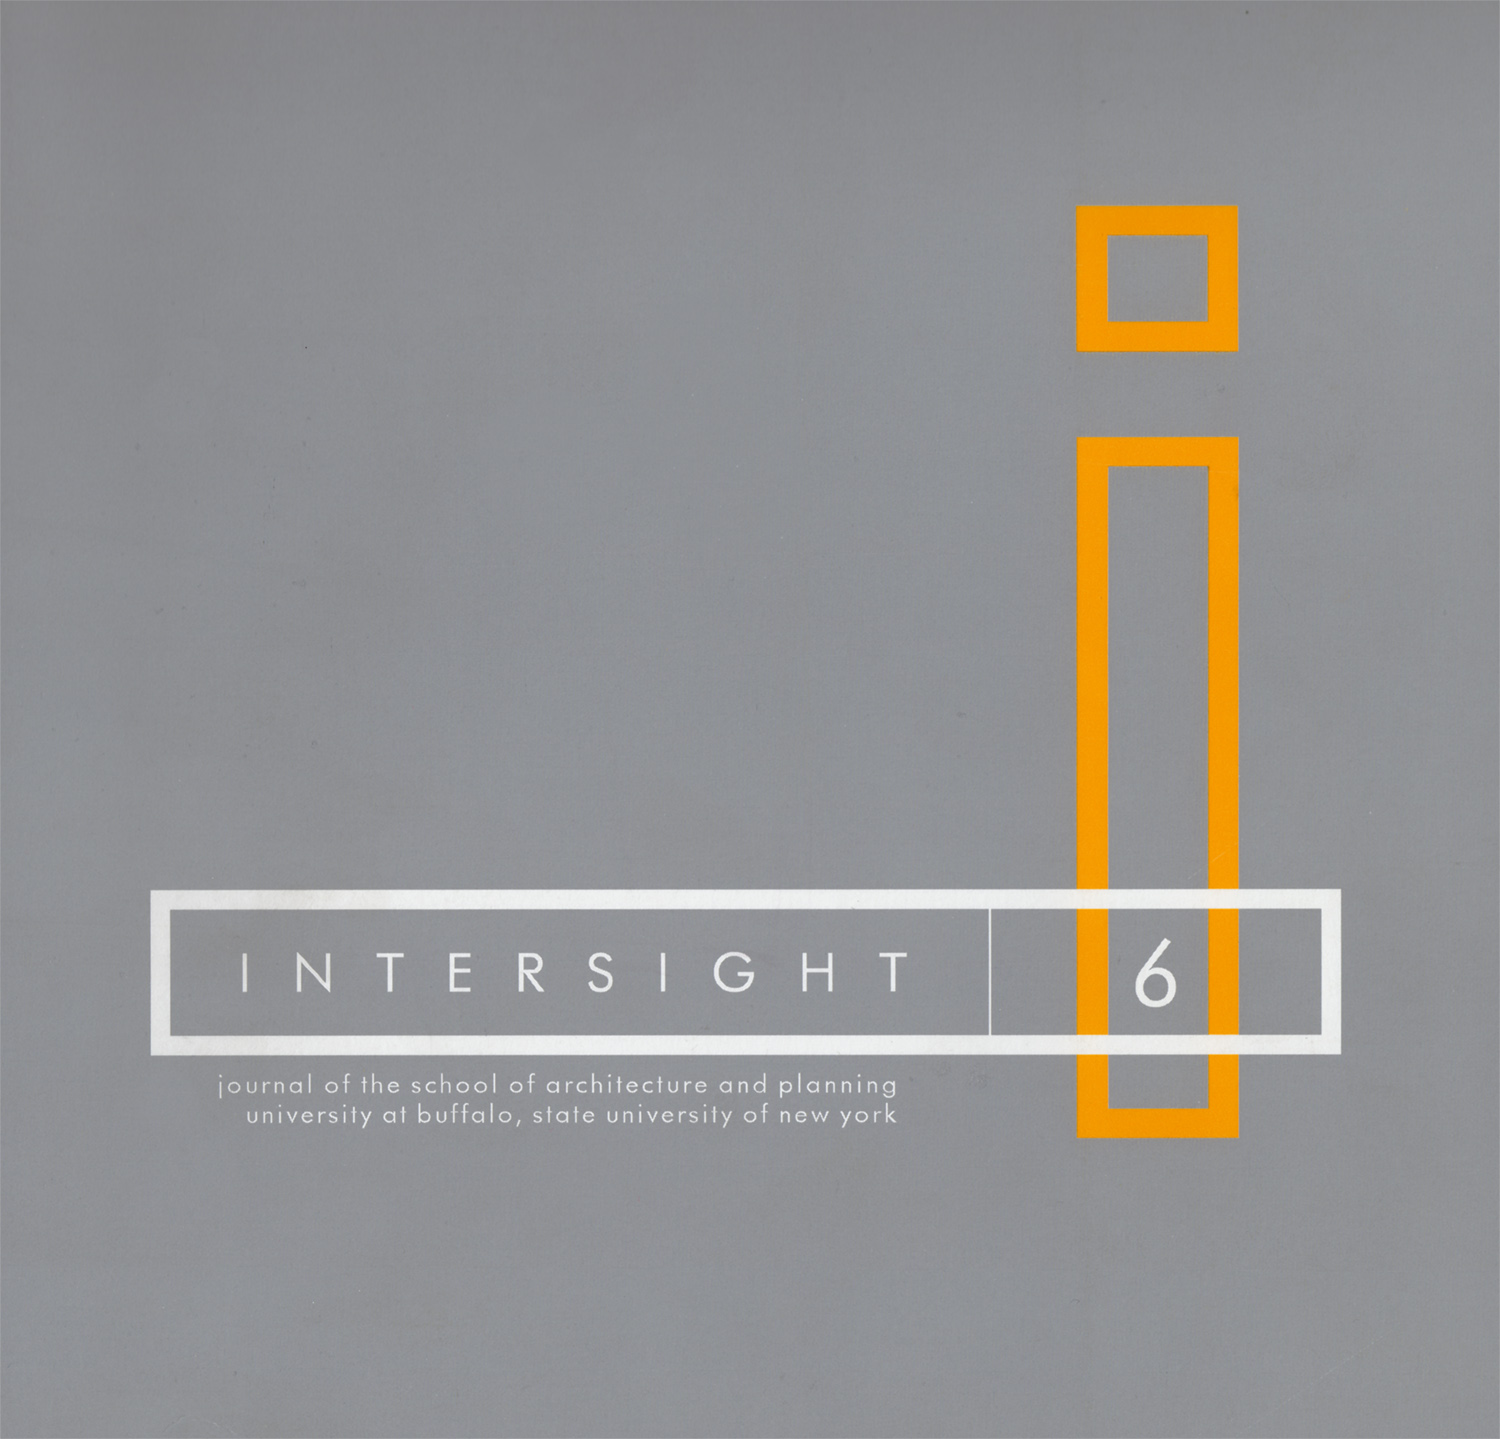 intersight_6-001.jpg